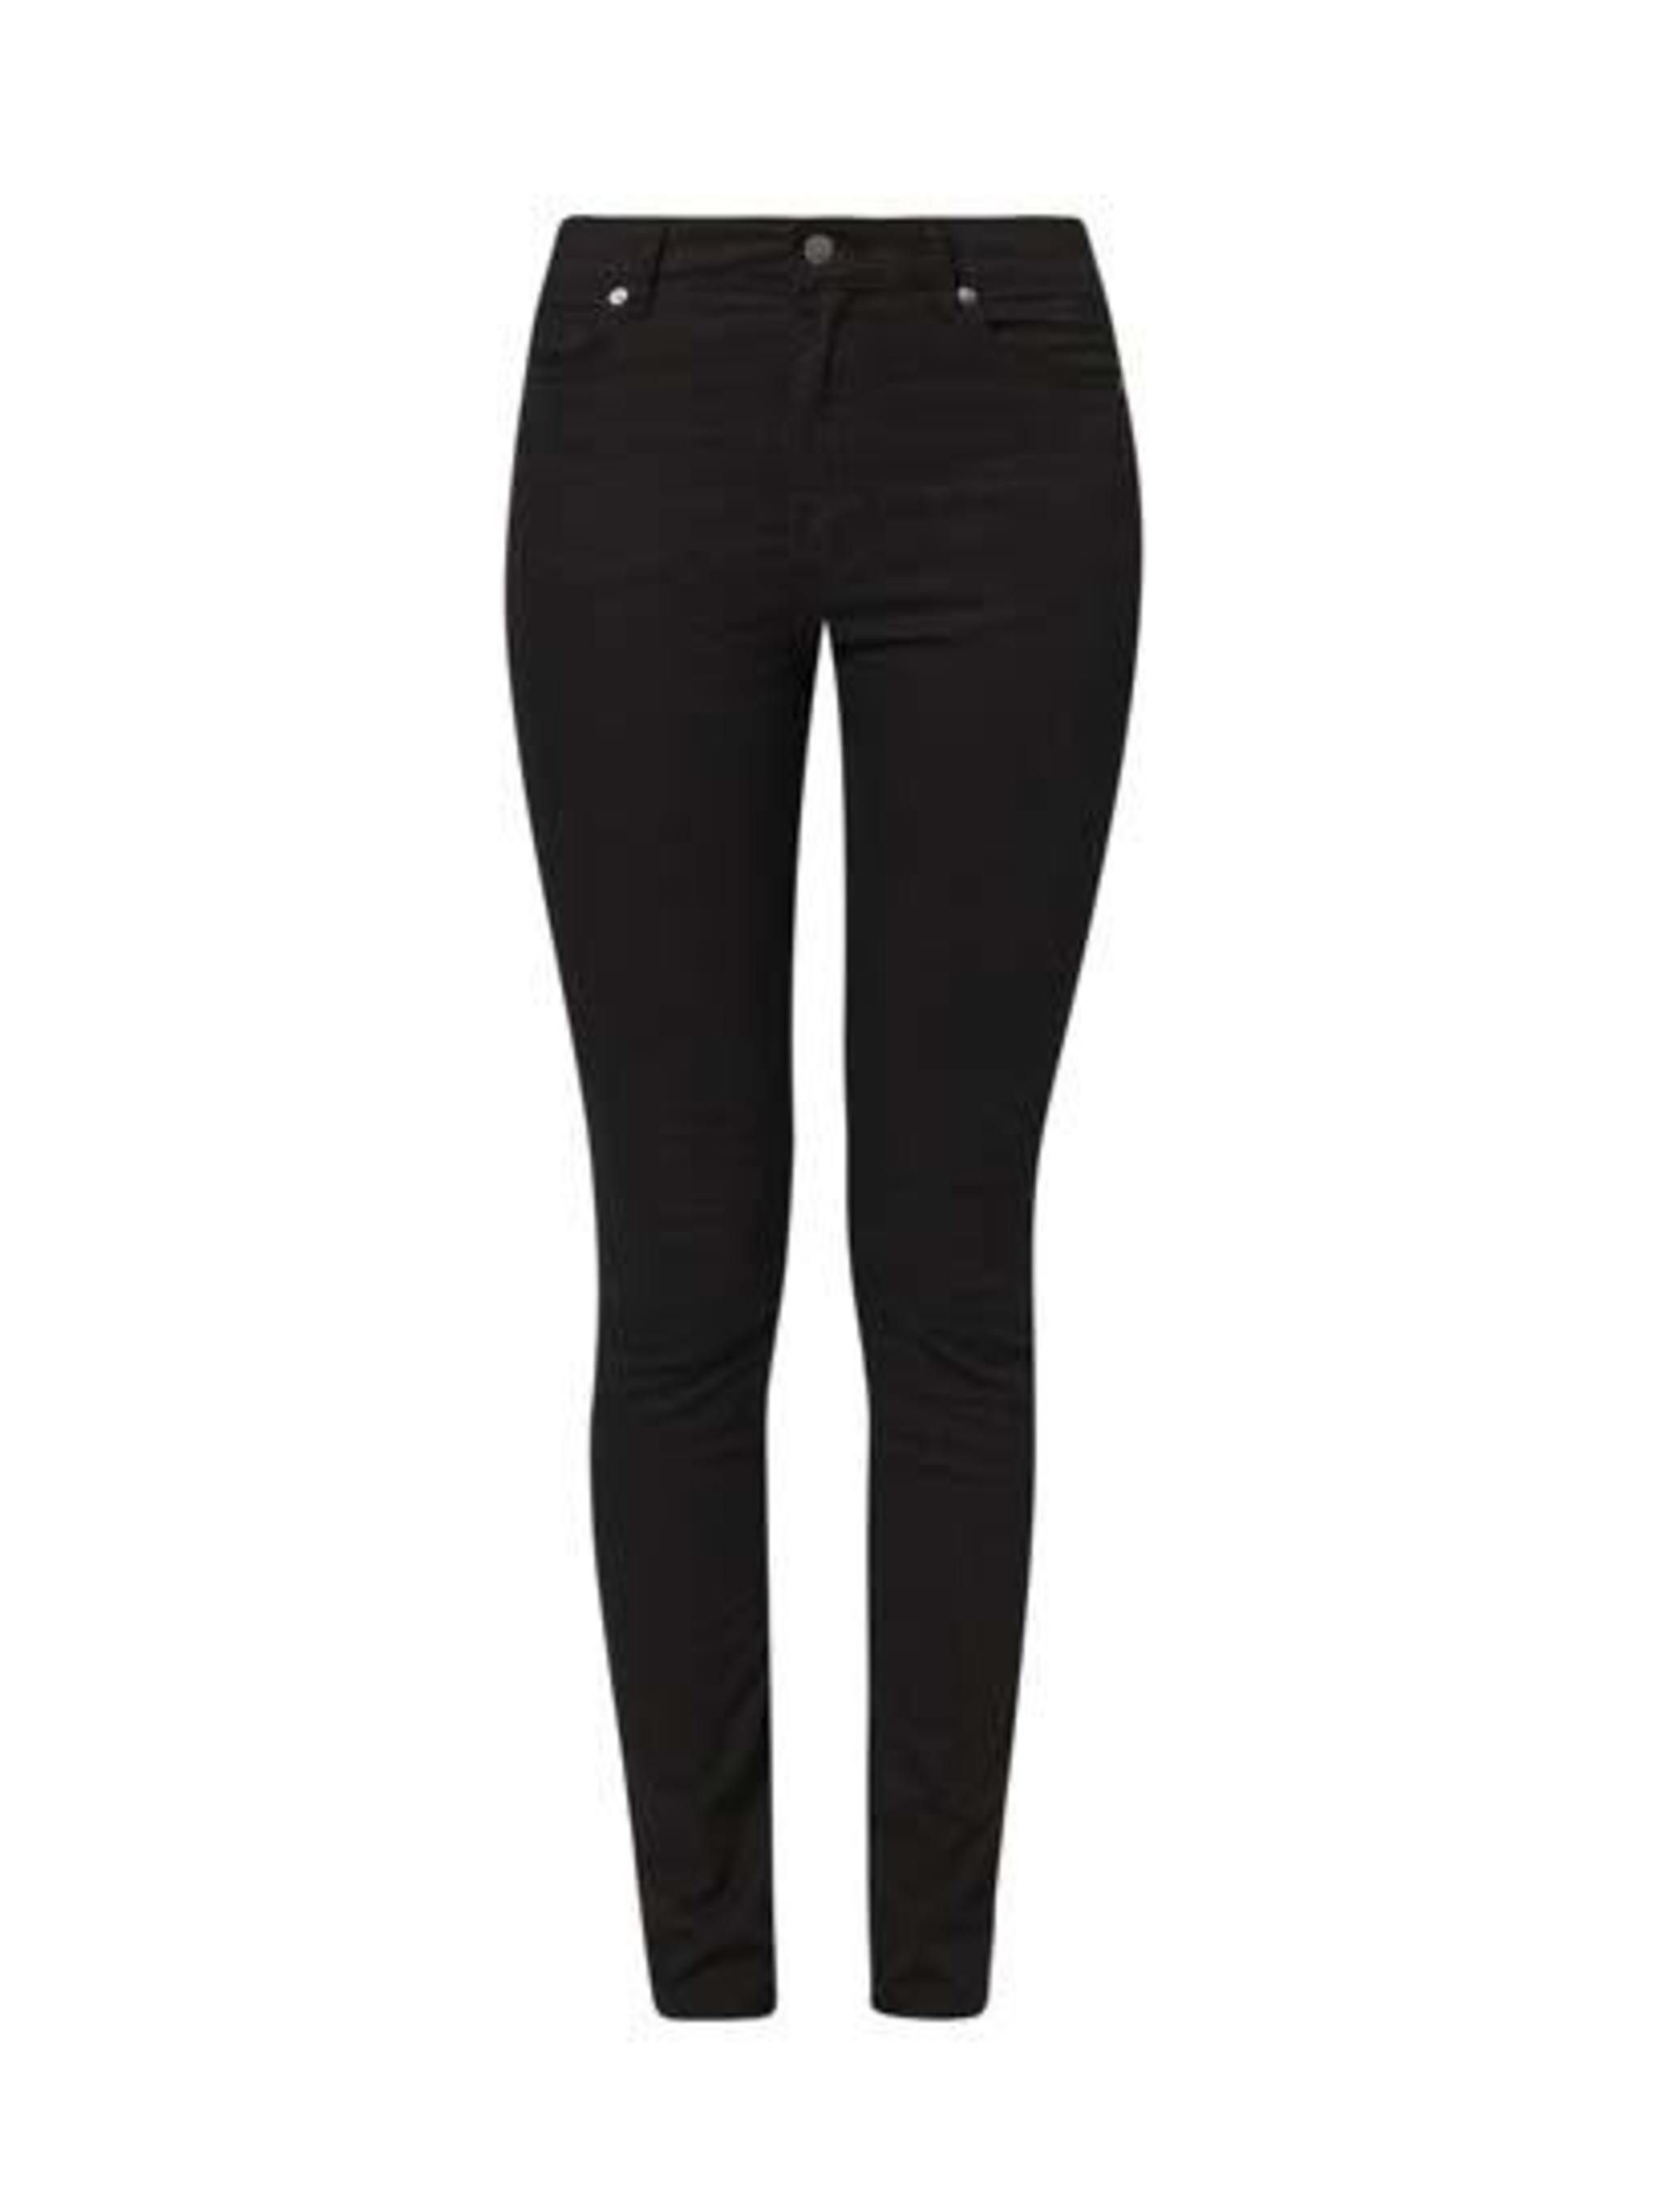 "<p>Add black skinny jeans, like these from Cheap Mondays, £42 available at <a href=""http://www.zalando.co.uk/cheap-monday-second-skin-very-stretch-slim-fit-jeans-black-ch621a036-955.html"">Zalando</a></p>"